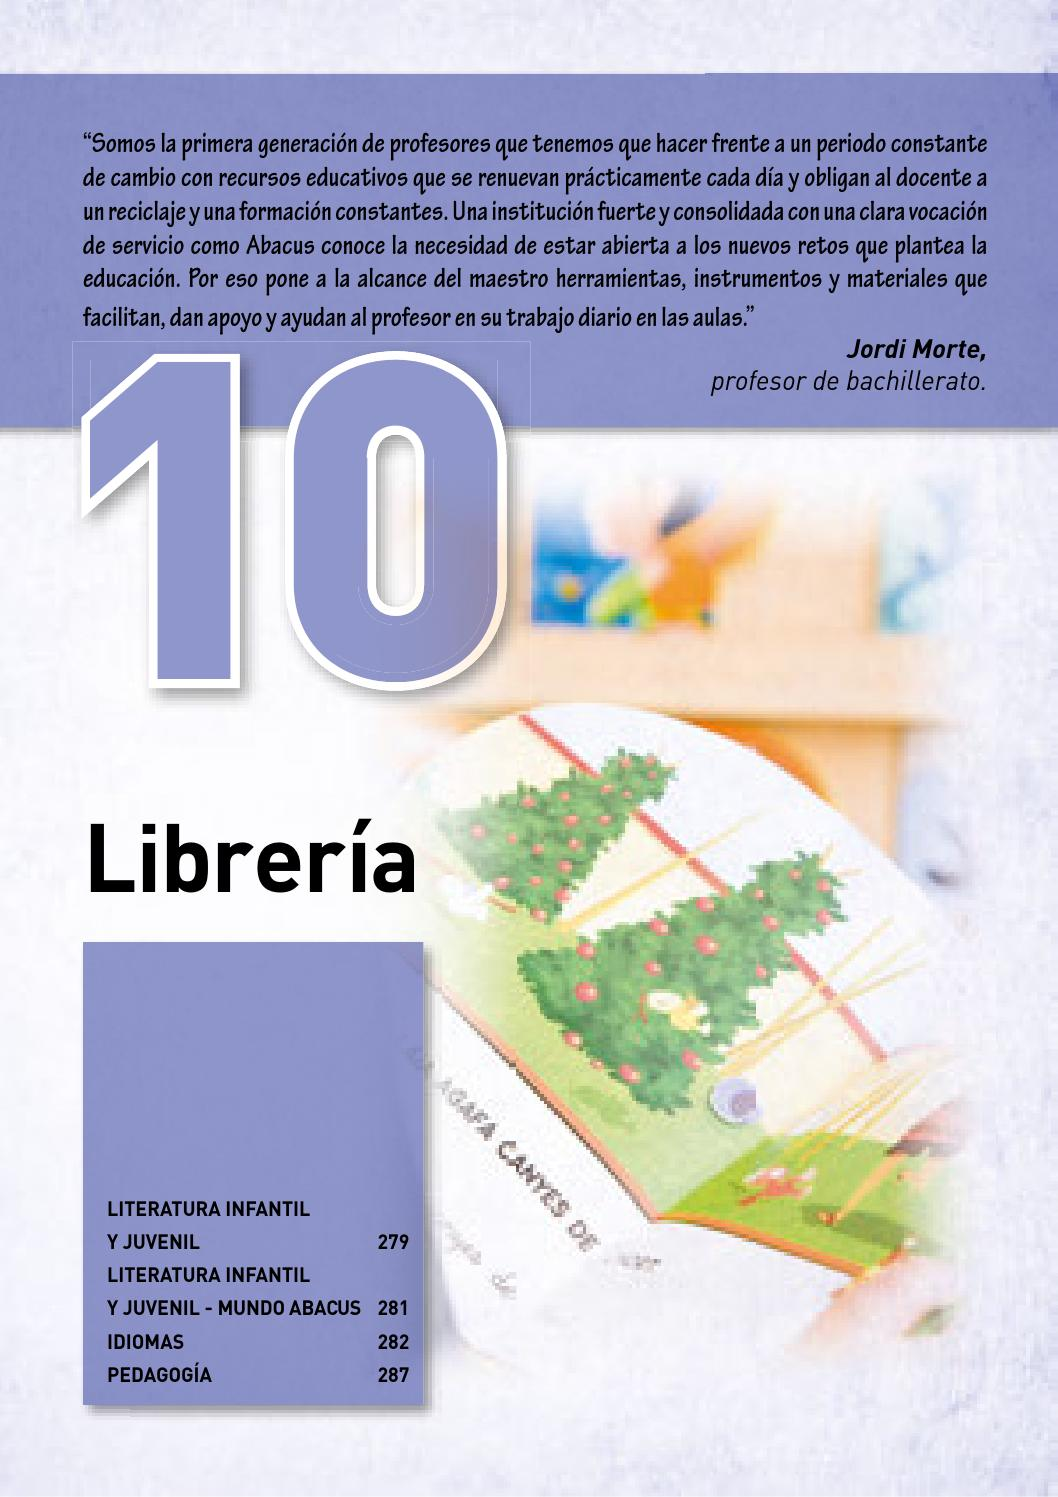 Libreria Abacus Abacus Catalogo By Misfolletos Misfolletos Issuu